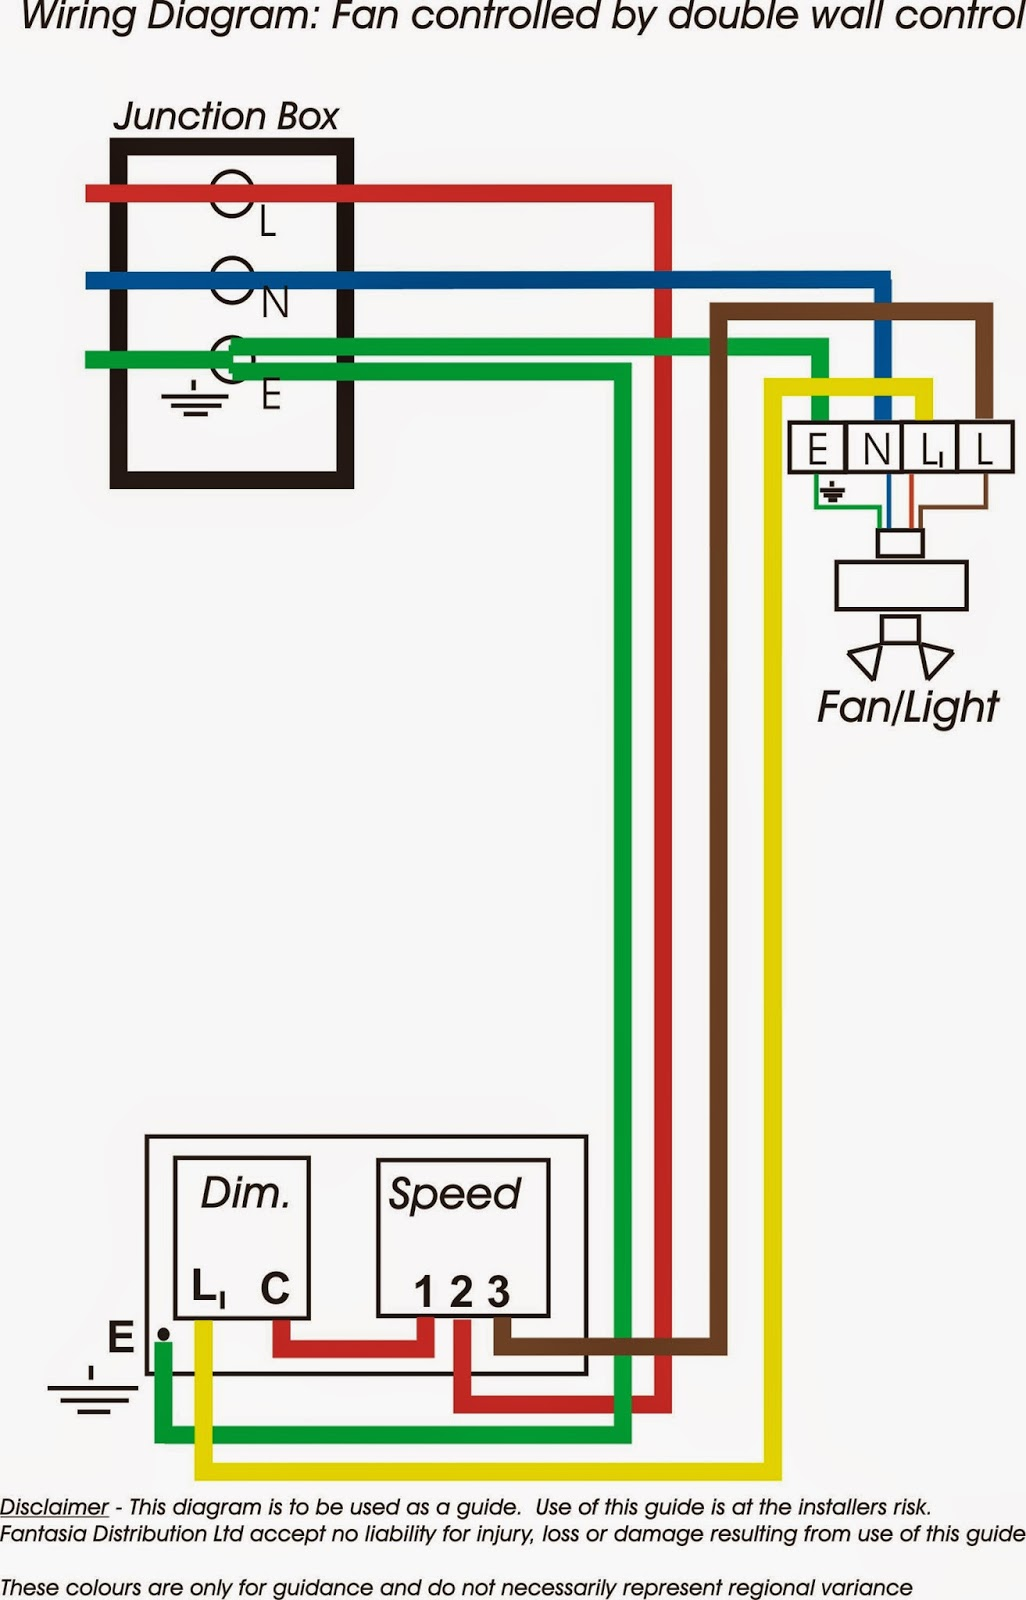 Electric Work: Wiring diagram